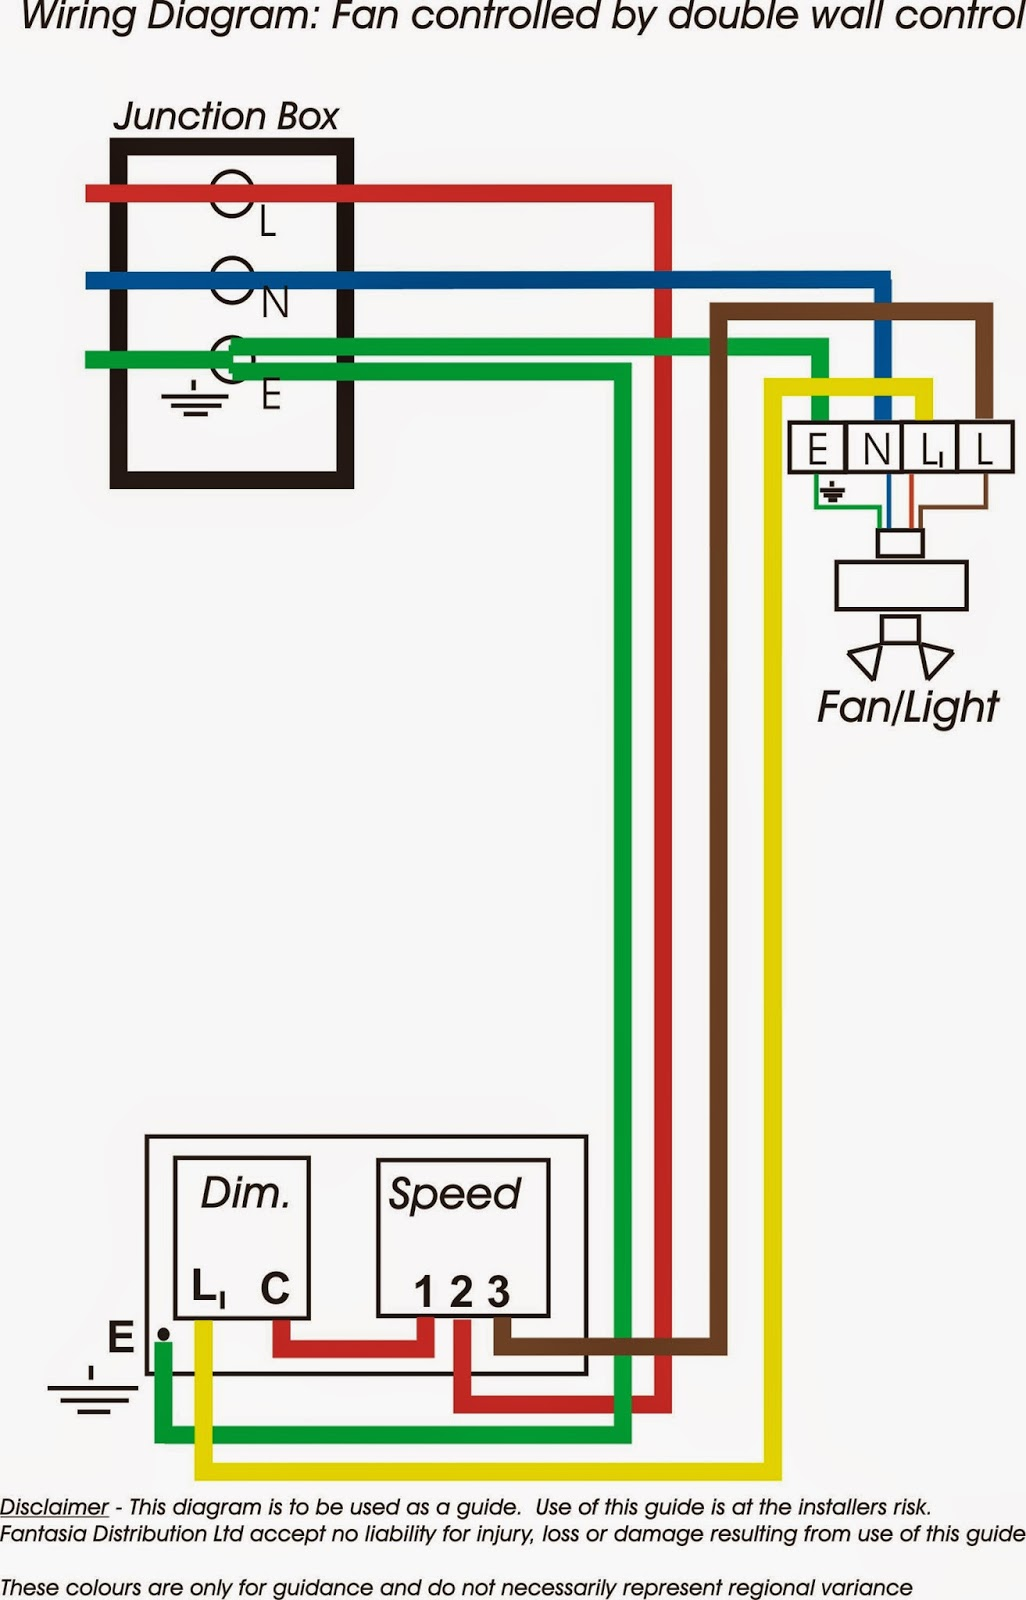 Electric Work: Wiring diagram